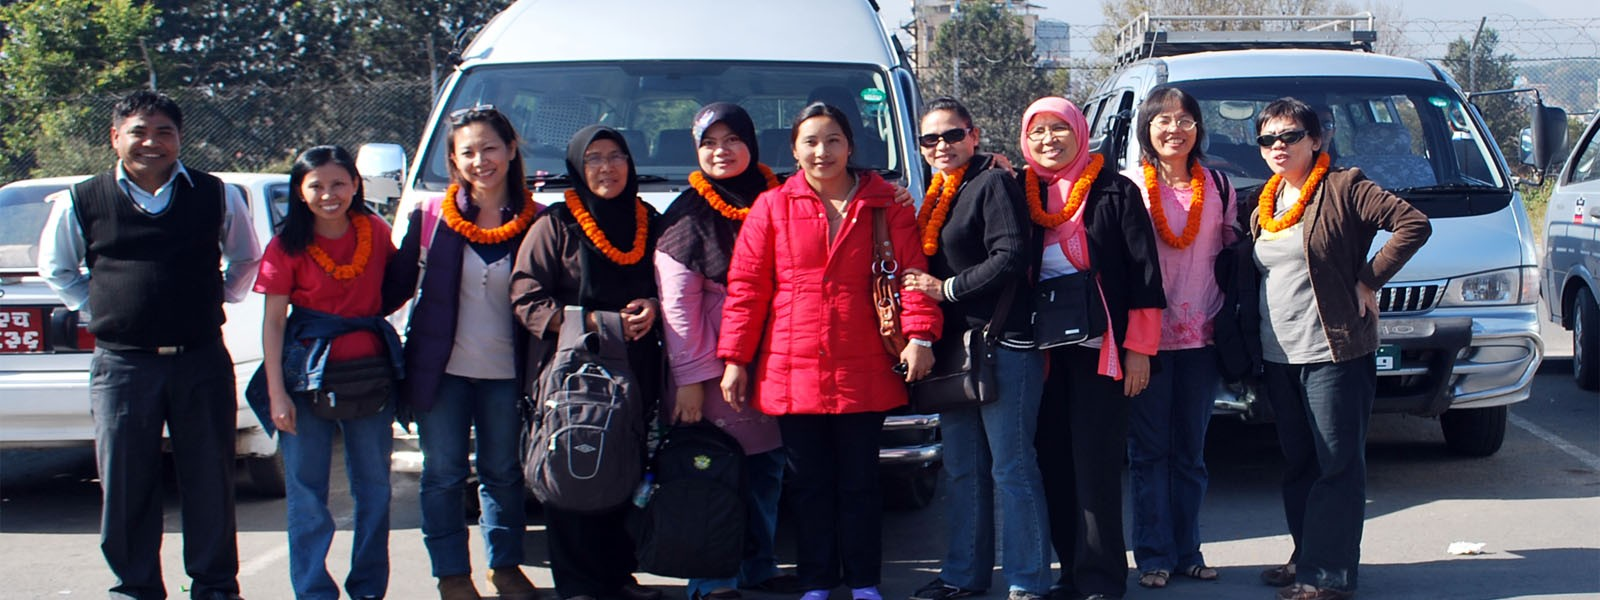 Kumar Karki and Malaysian tour group